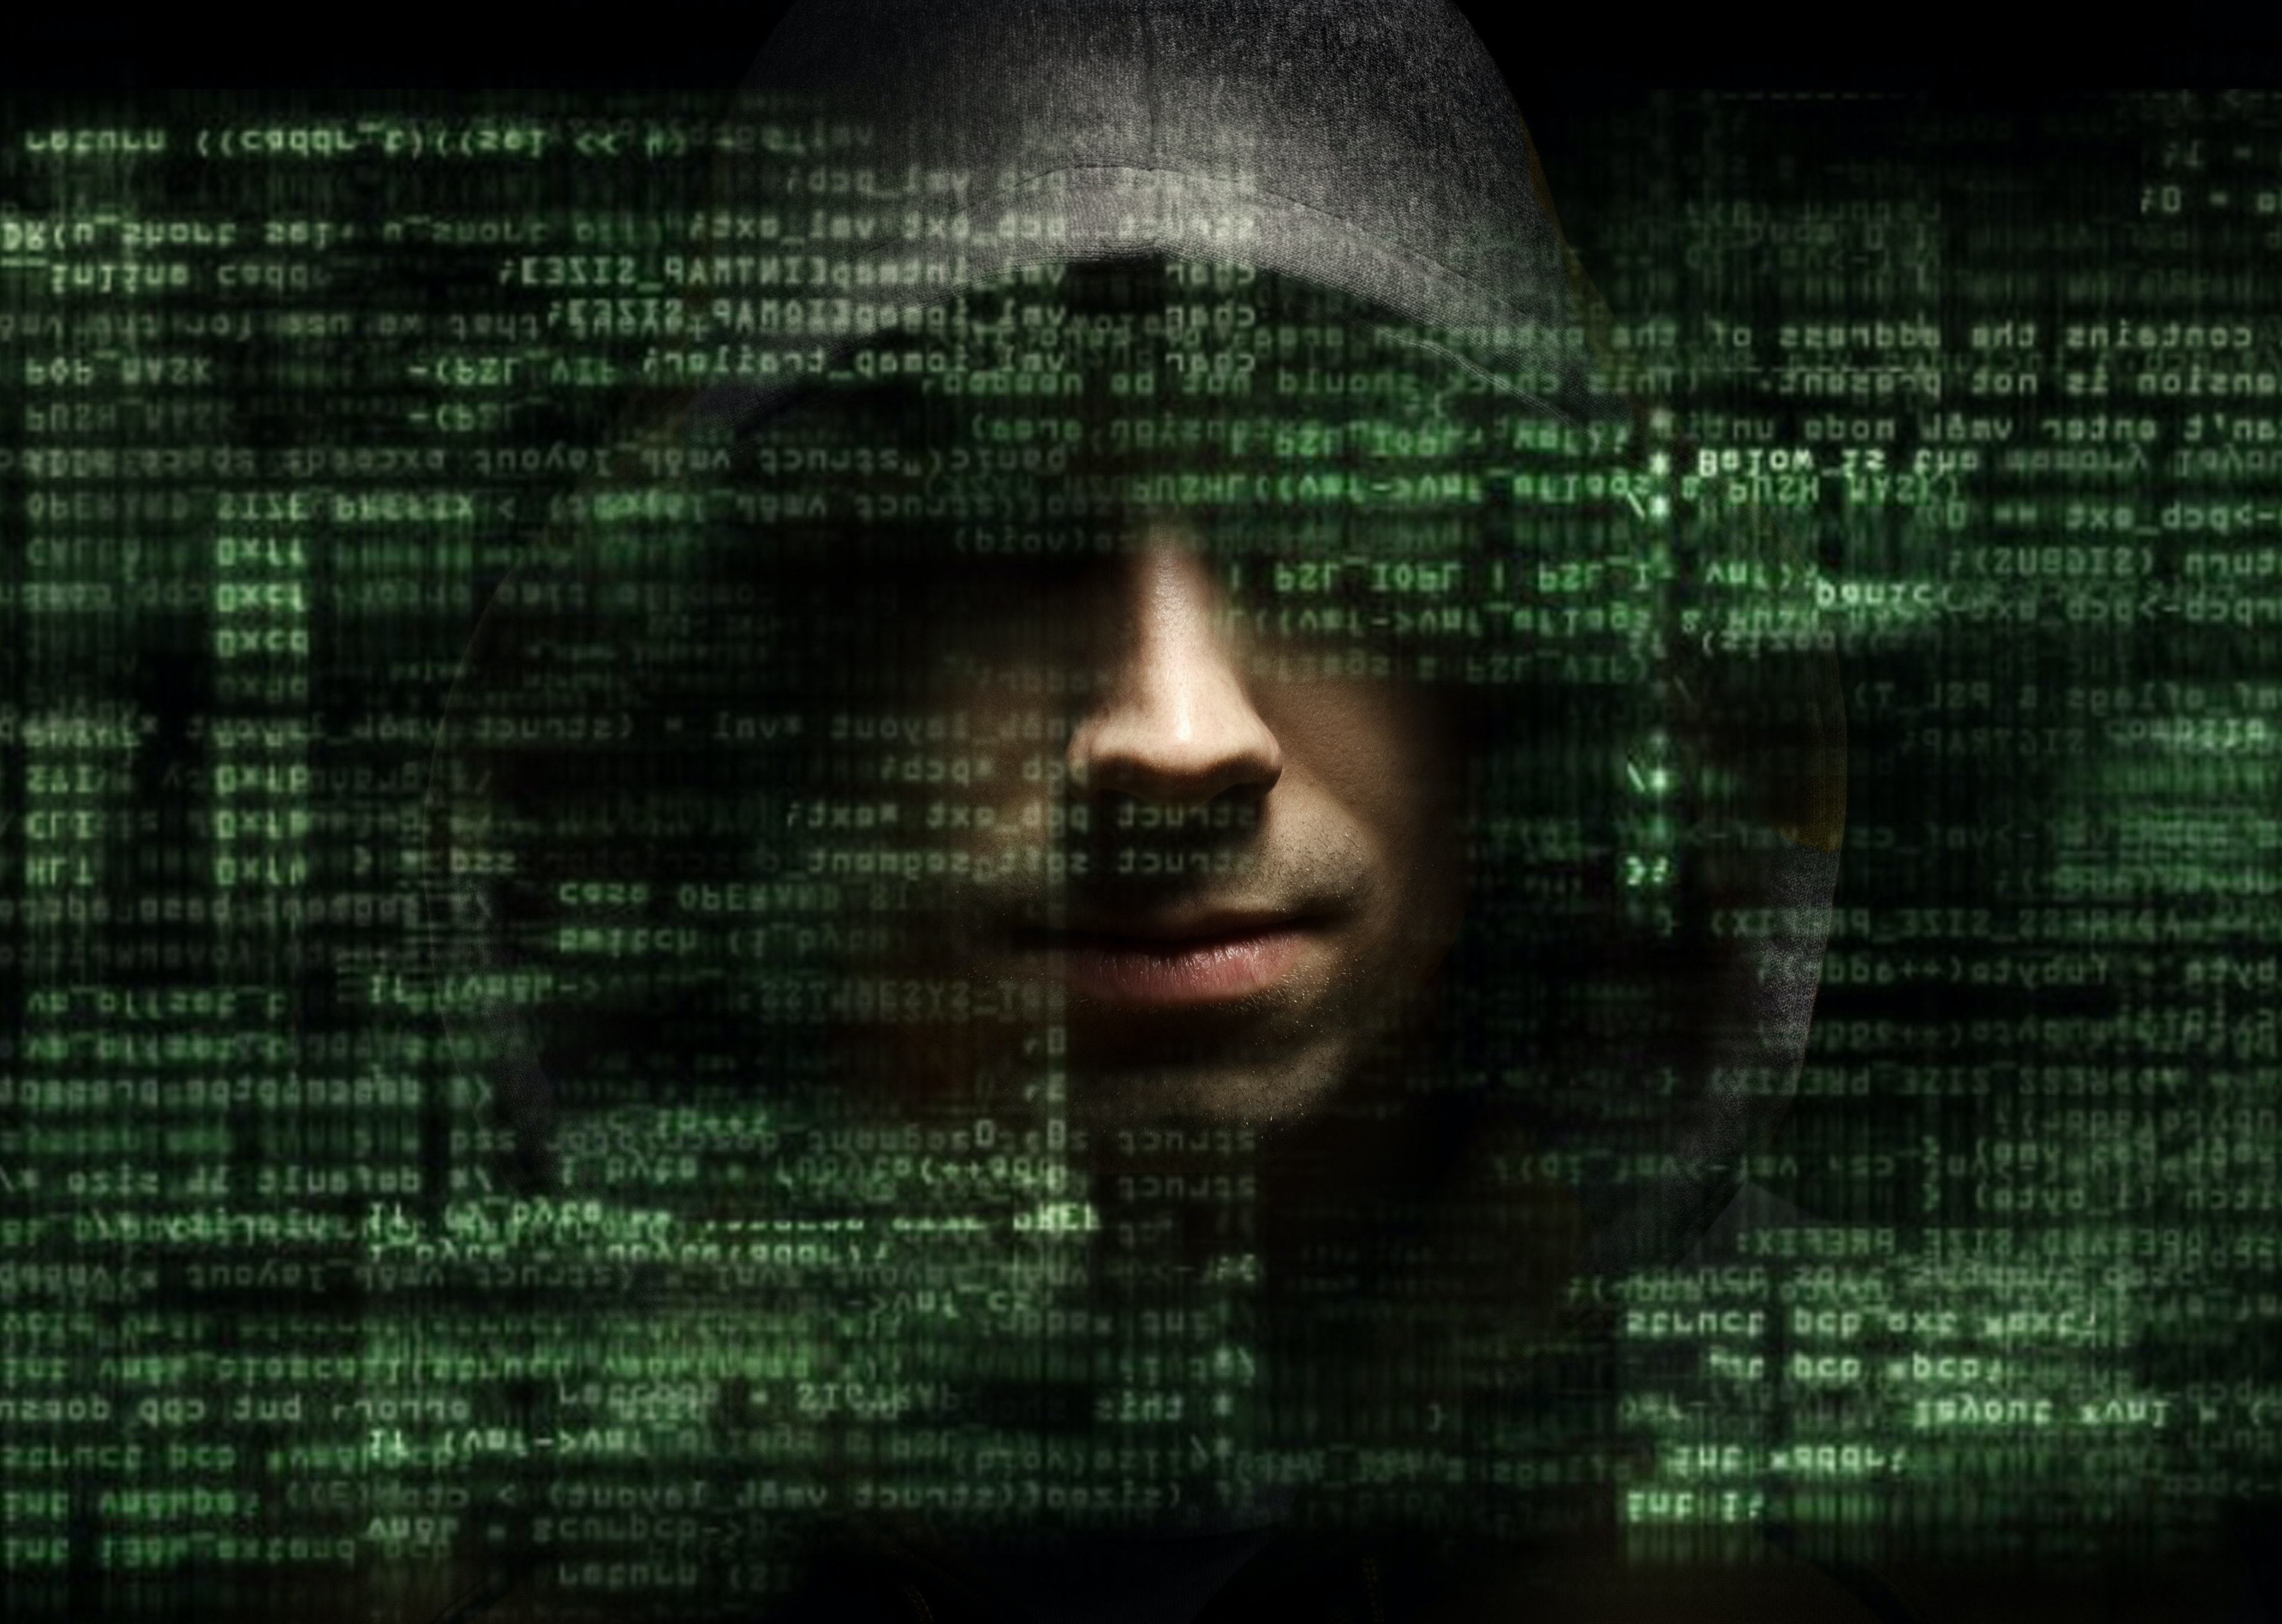 cyber crime how and why hackers This study analyzes the ways in which hackers interpret their lives, behavior, and beliefs, as well as their perceptions of how society treats them.